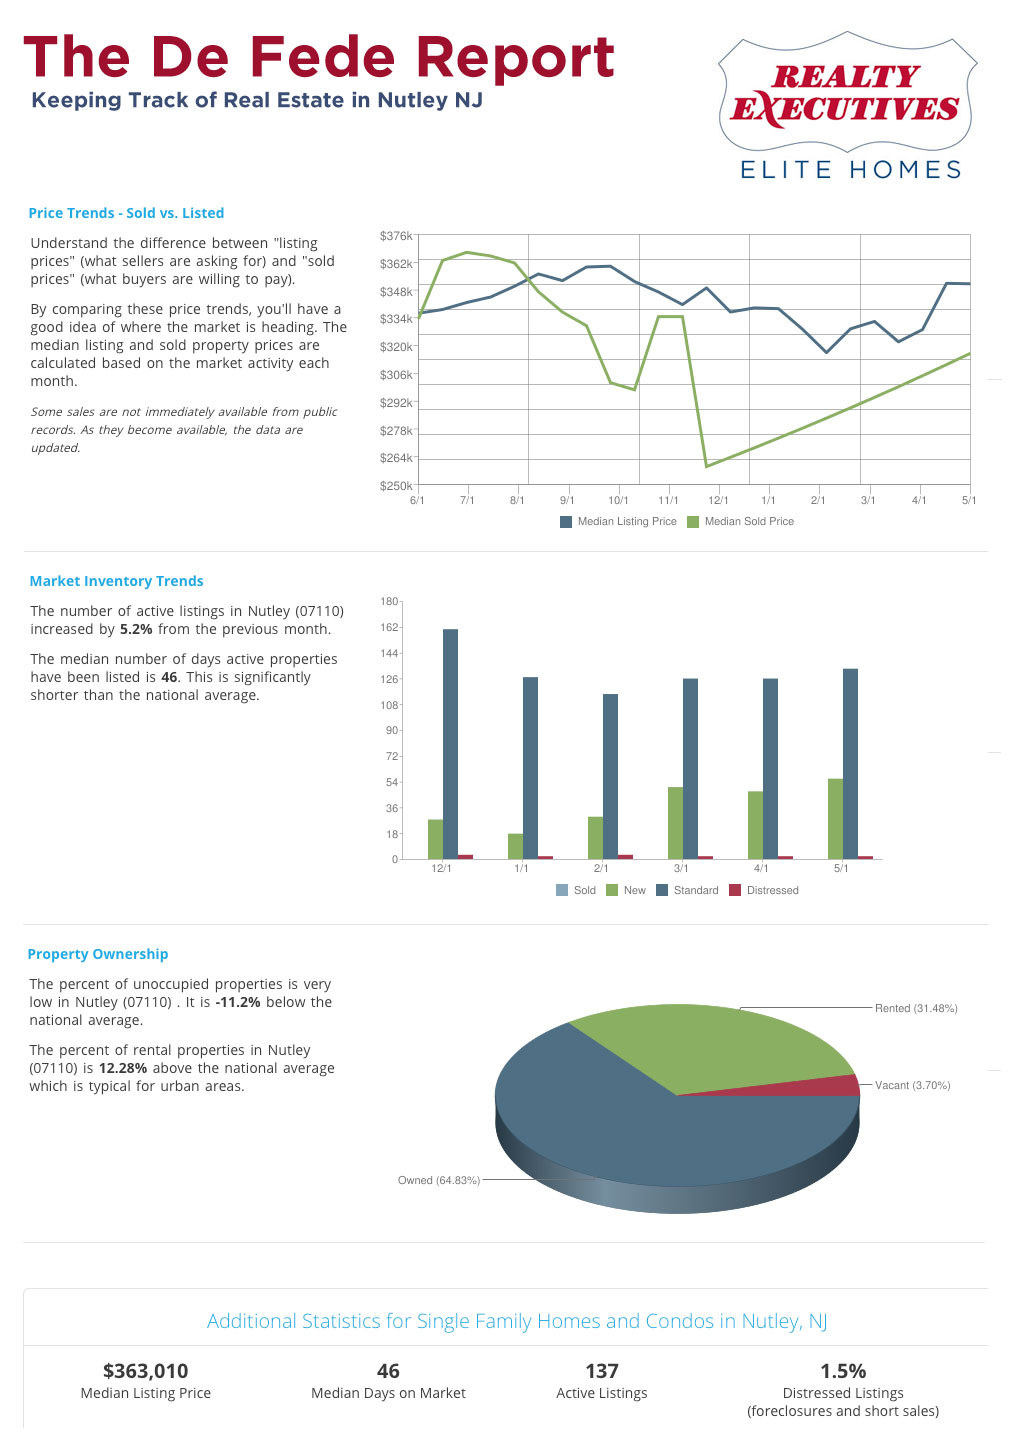 The De Fede Report - What's going on with Nutley Real Estate